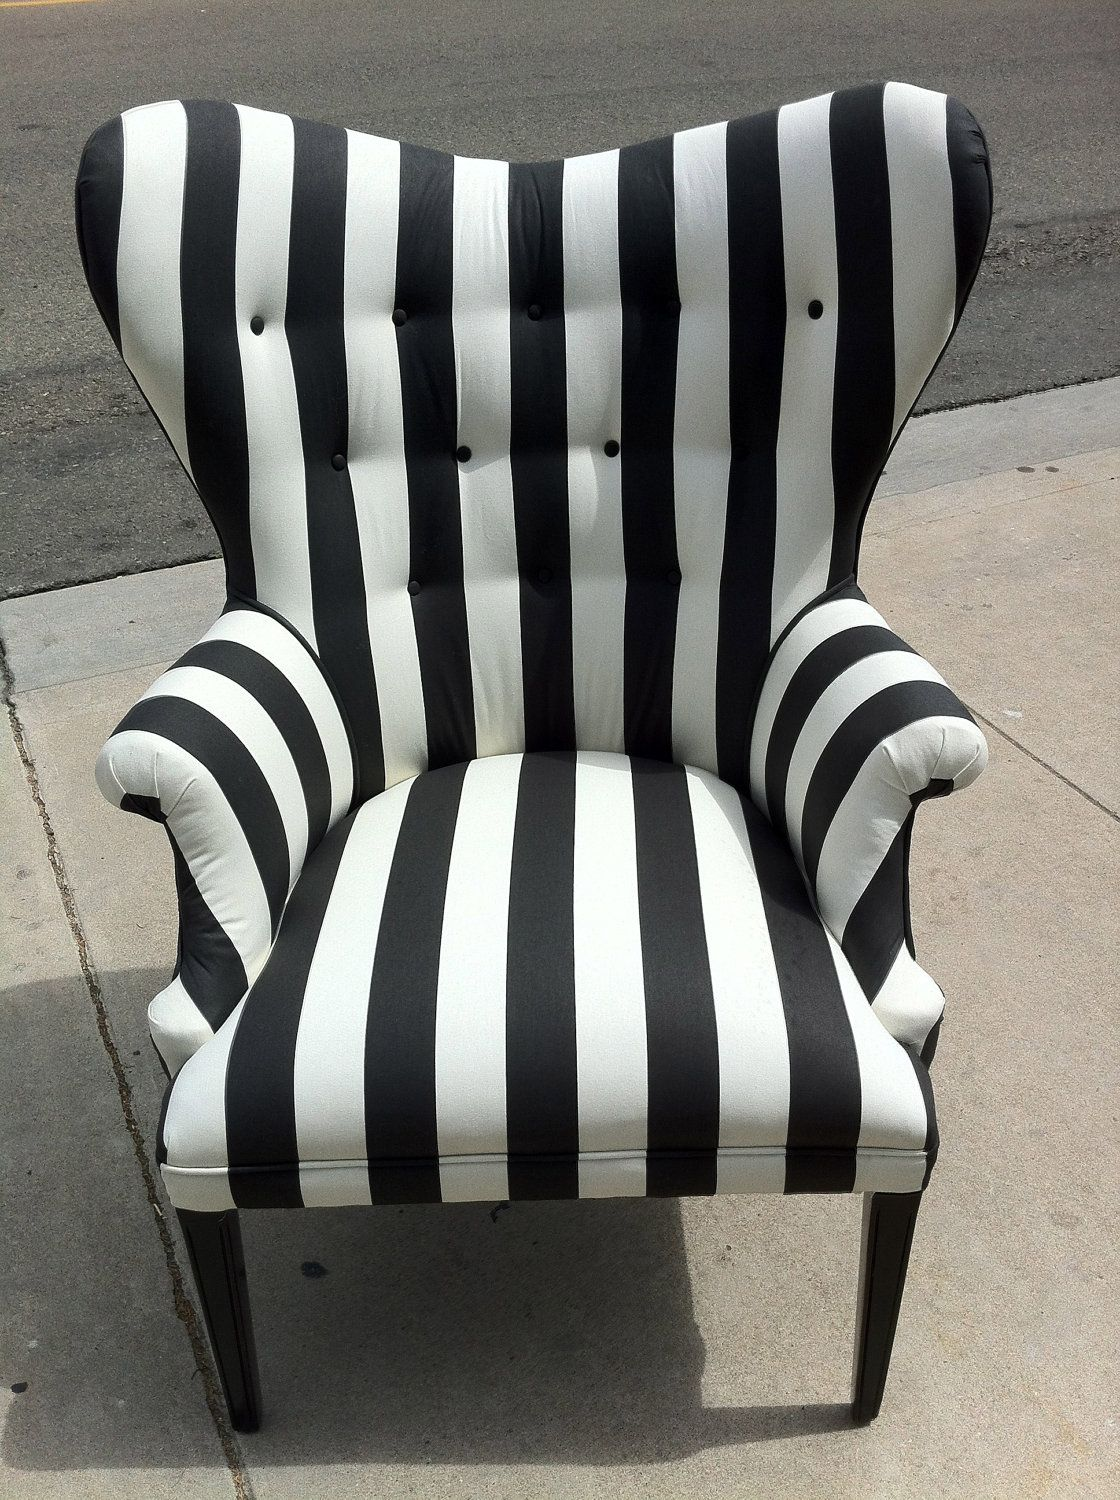 Black chair and white chair - Black And White Striped Chair By Poeticrockstar On Etsy